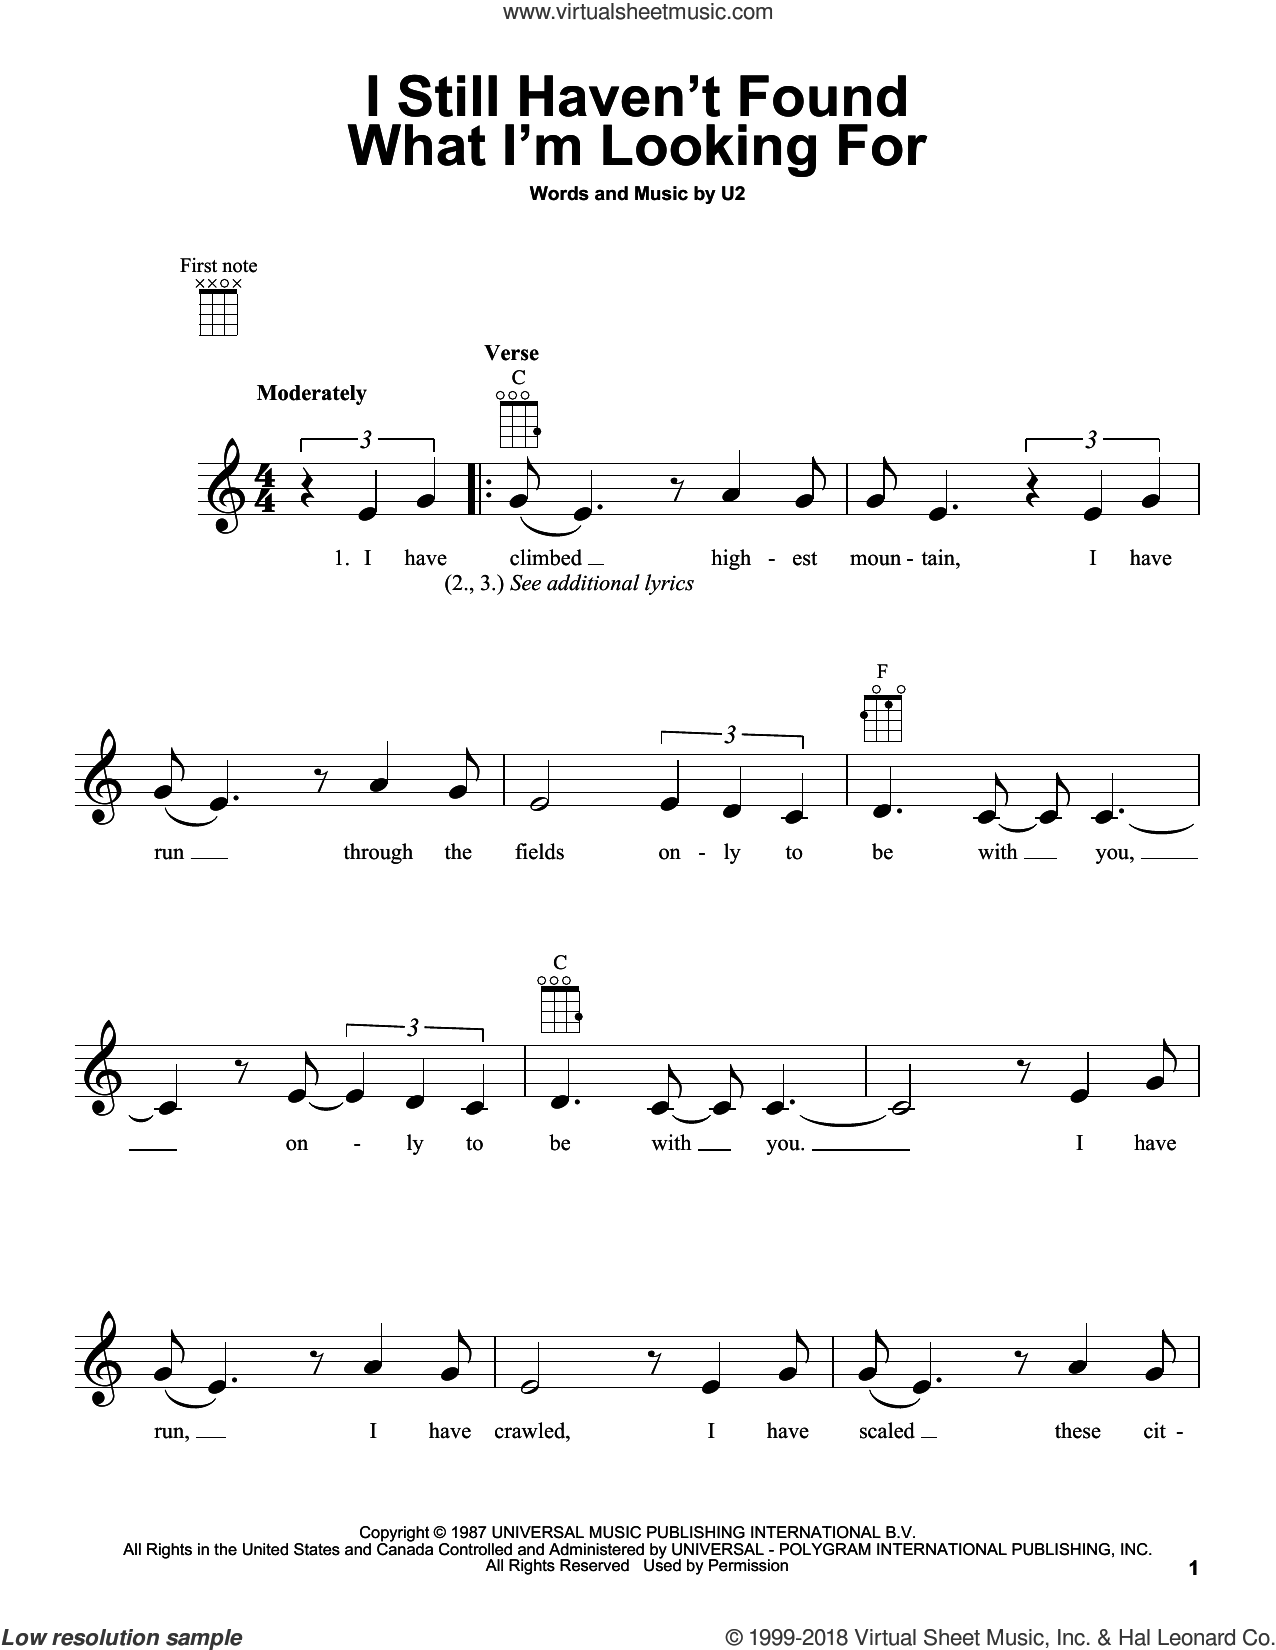 I Still Haven't Found What I'm Looking For sheet music for ukulele by U2 and David Cook, intermediate skill level